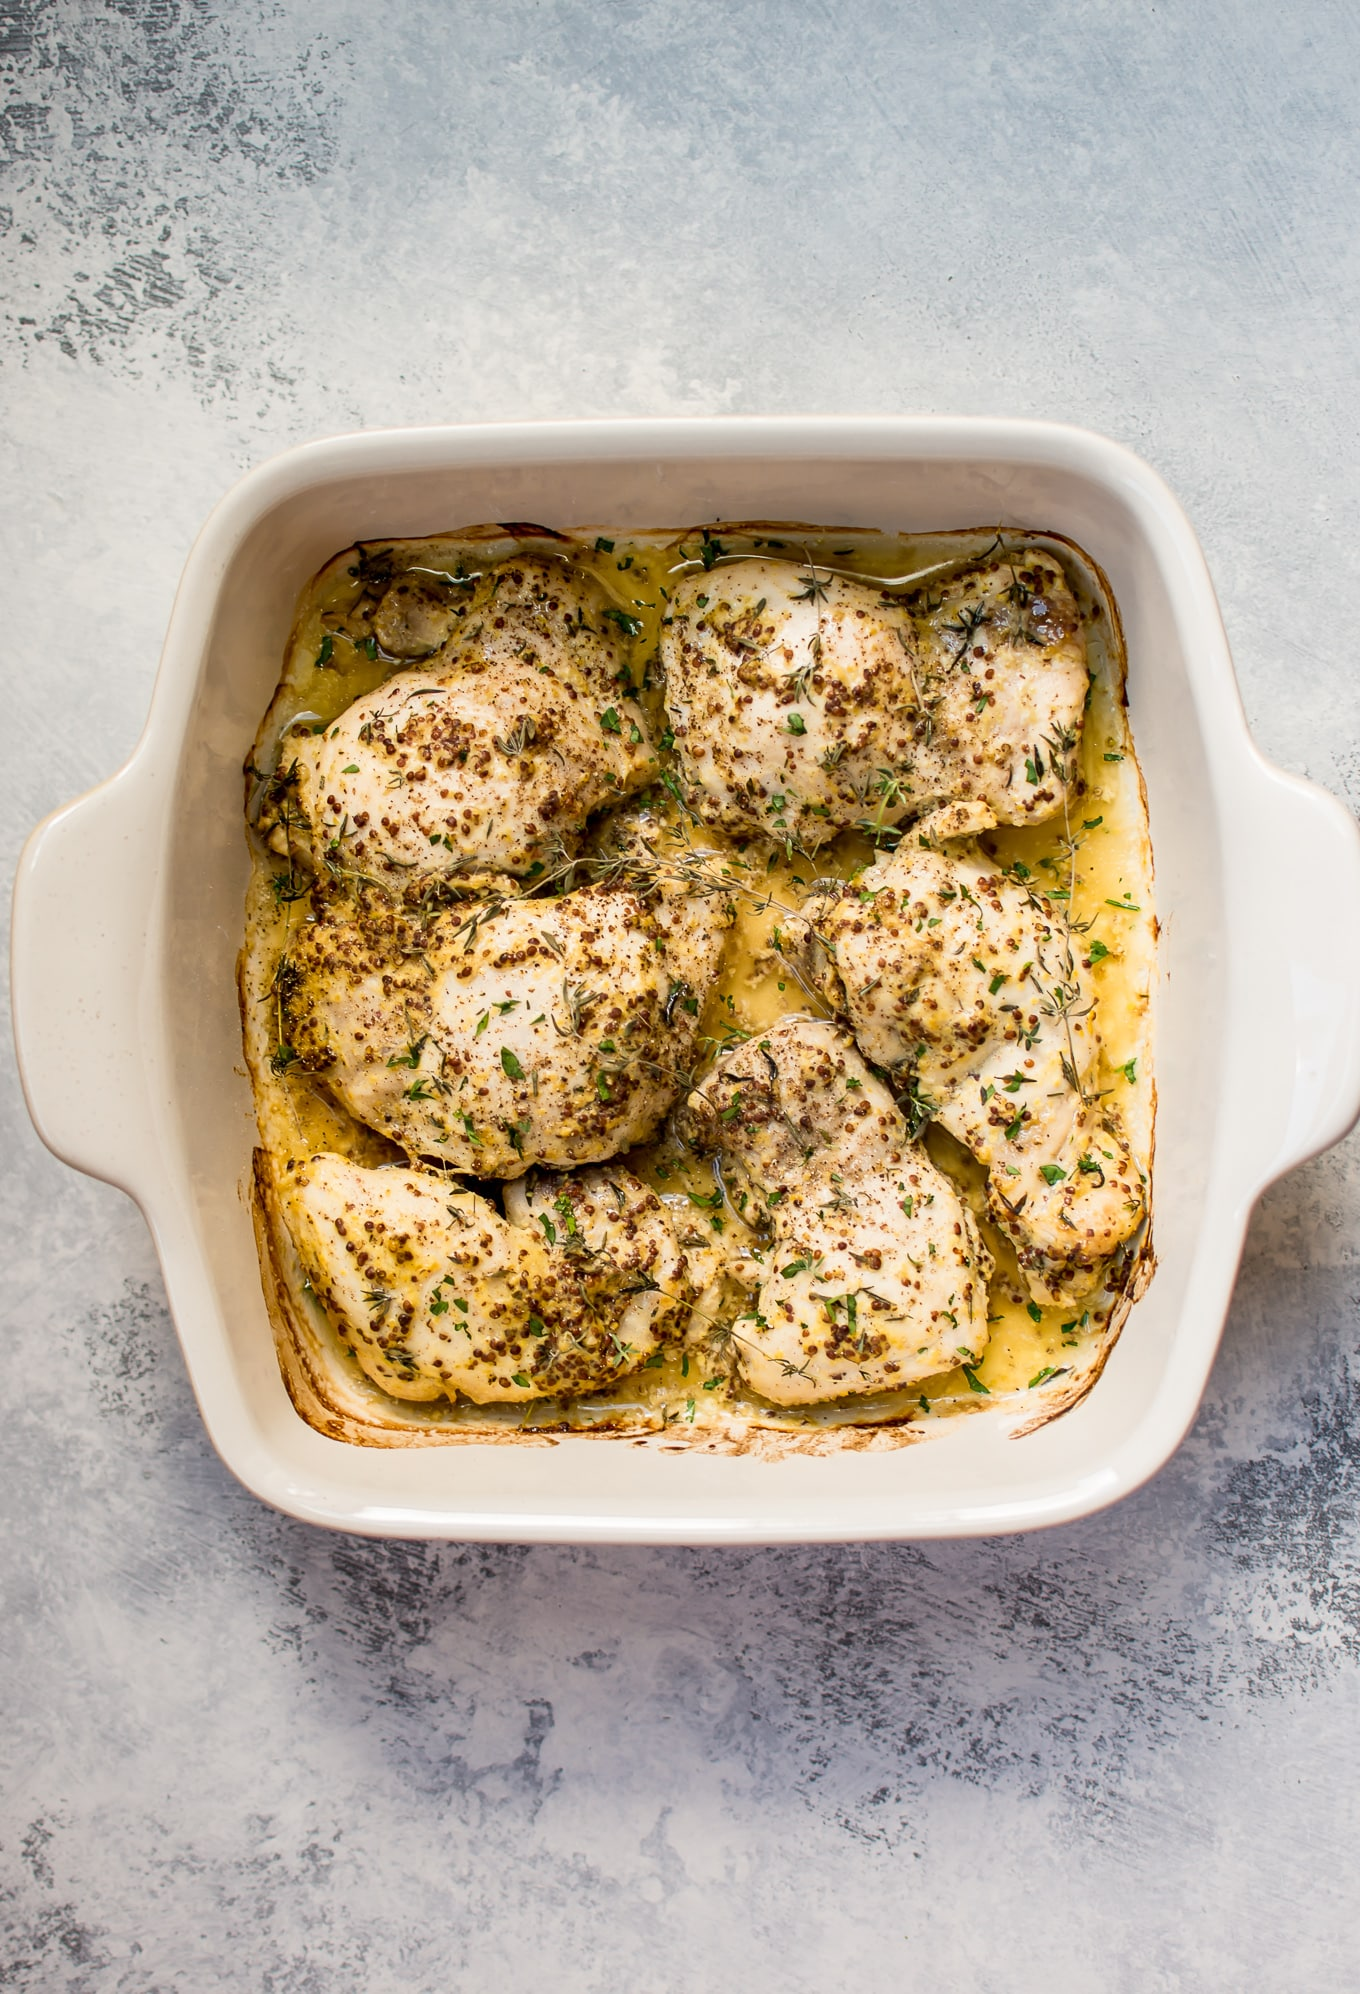 These easy roasted mustard chicken thighs have only a handful of ingredients and come together fast with minimal effort. They stay succulent and juicy, and you will love the light pan sauce.